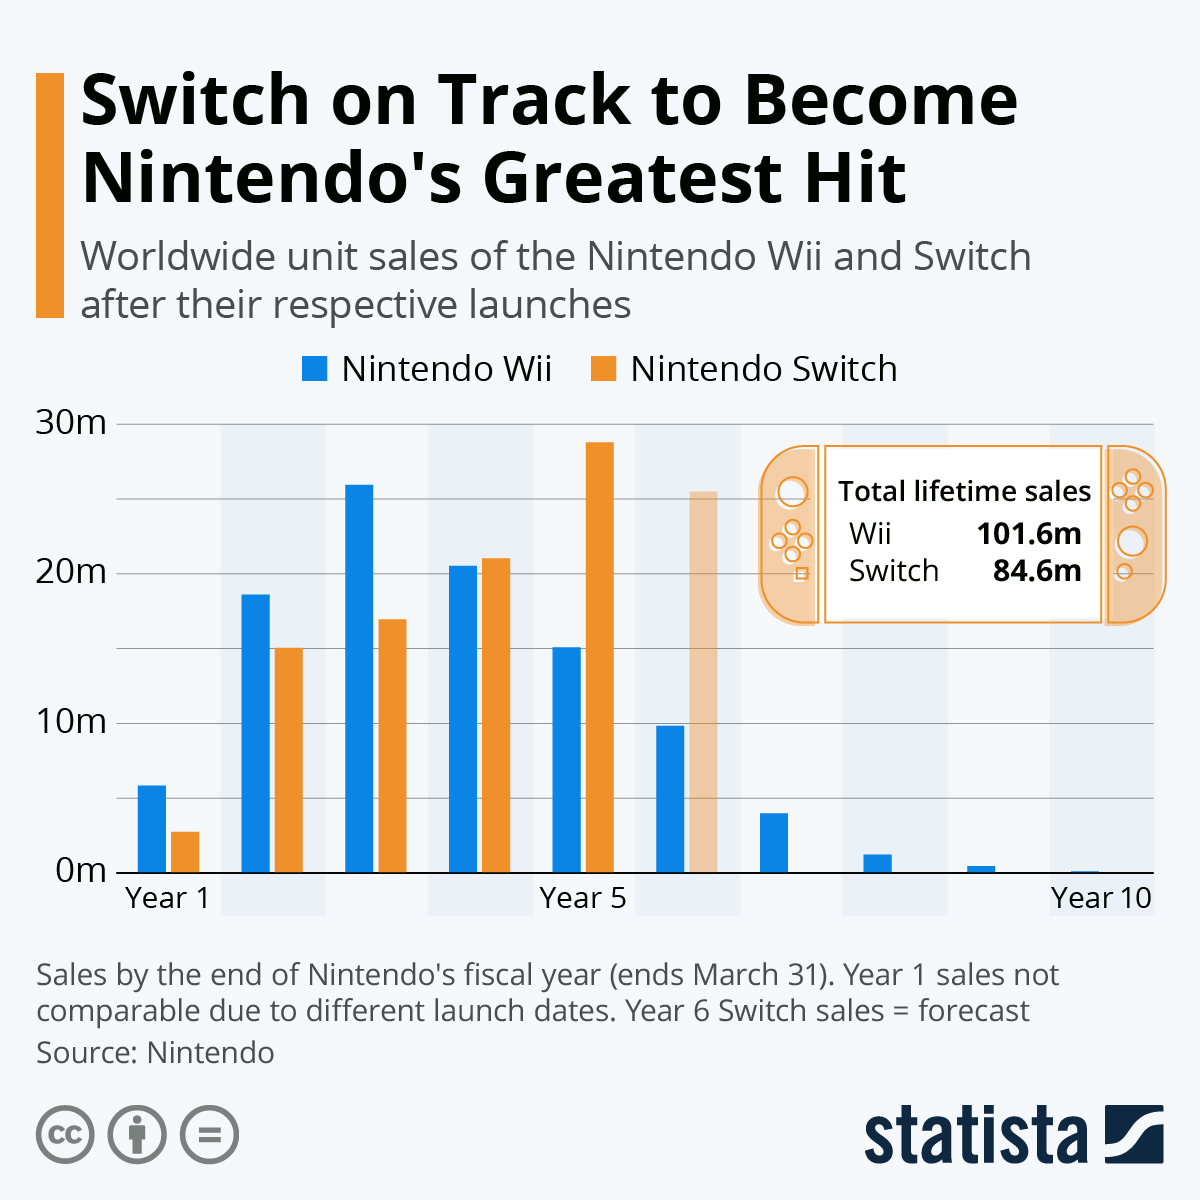 Switch stays on track to be Nintendo's greatest hit